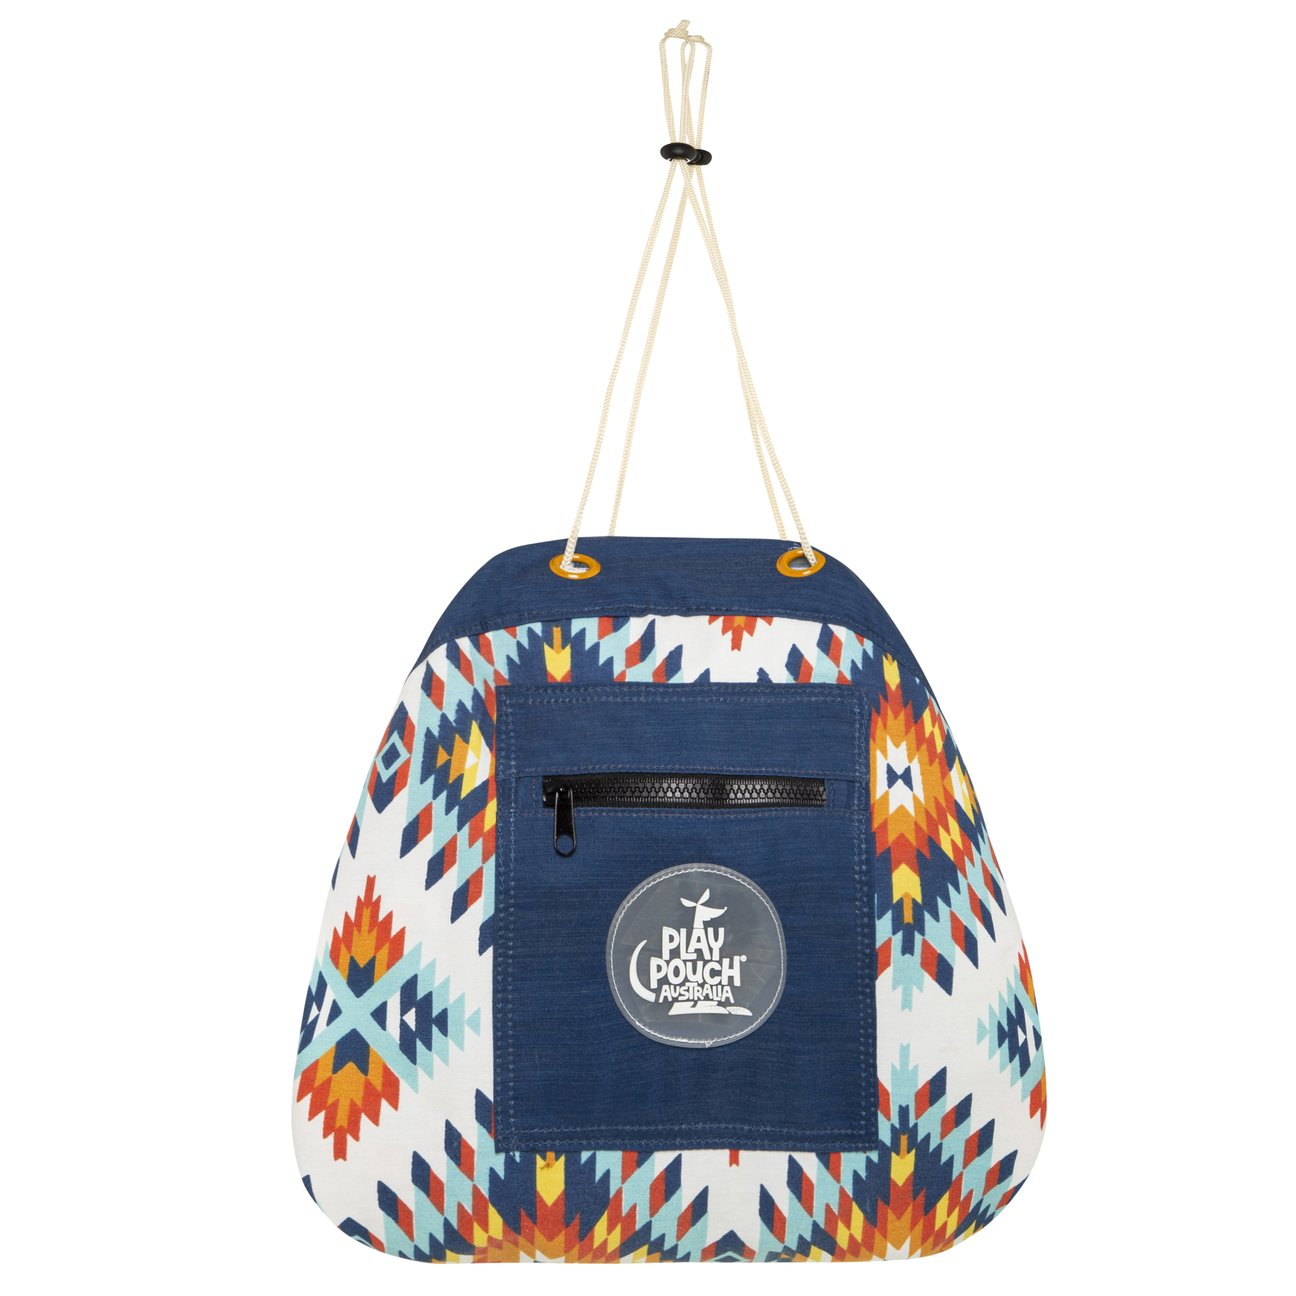 Aztec Aqua Pouch Mini ... waterproof - for beach, pool, park and play!